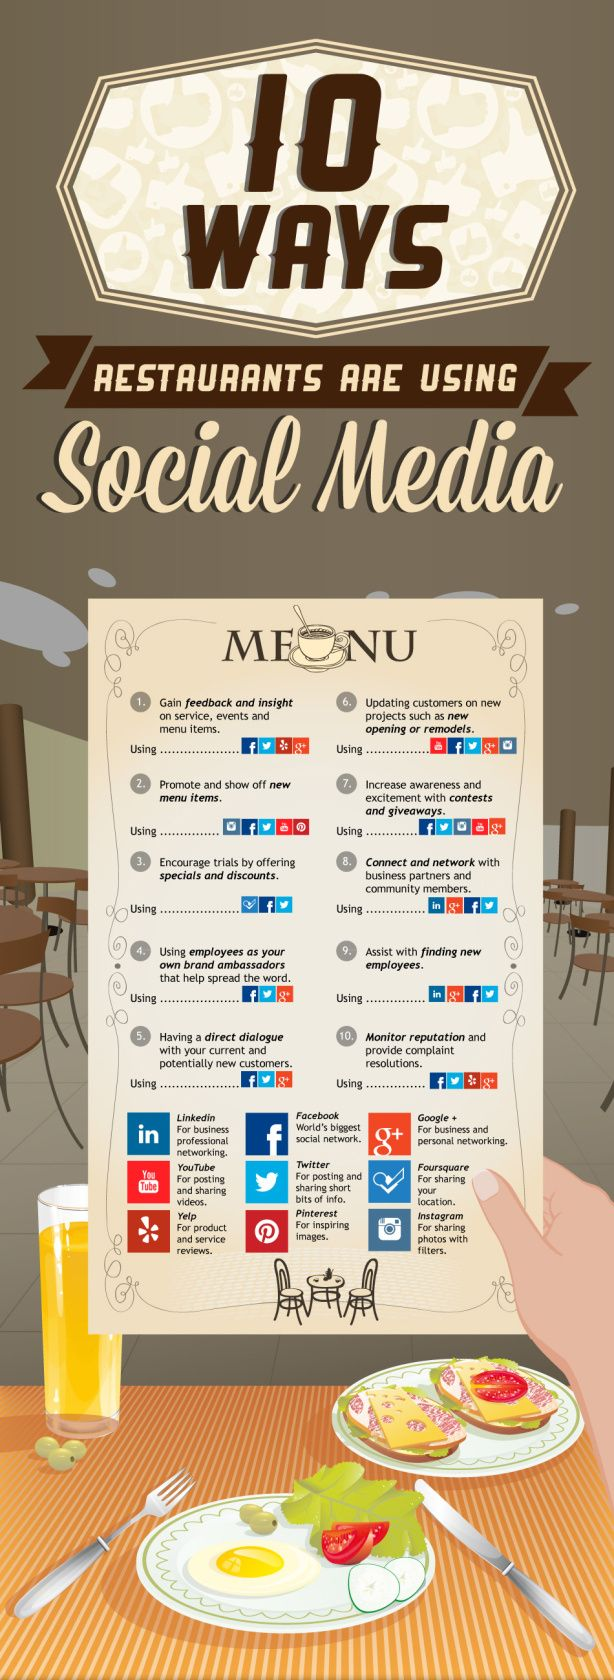 Why Your Restaurant Business Should Be Using Social Media..